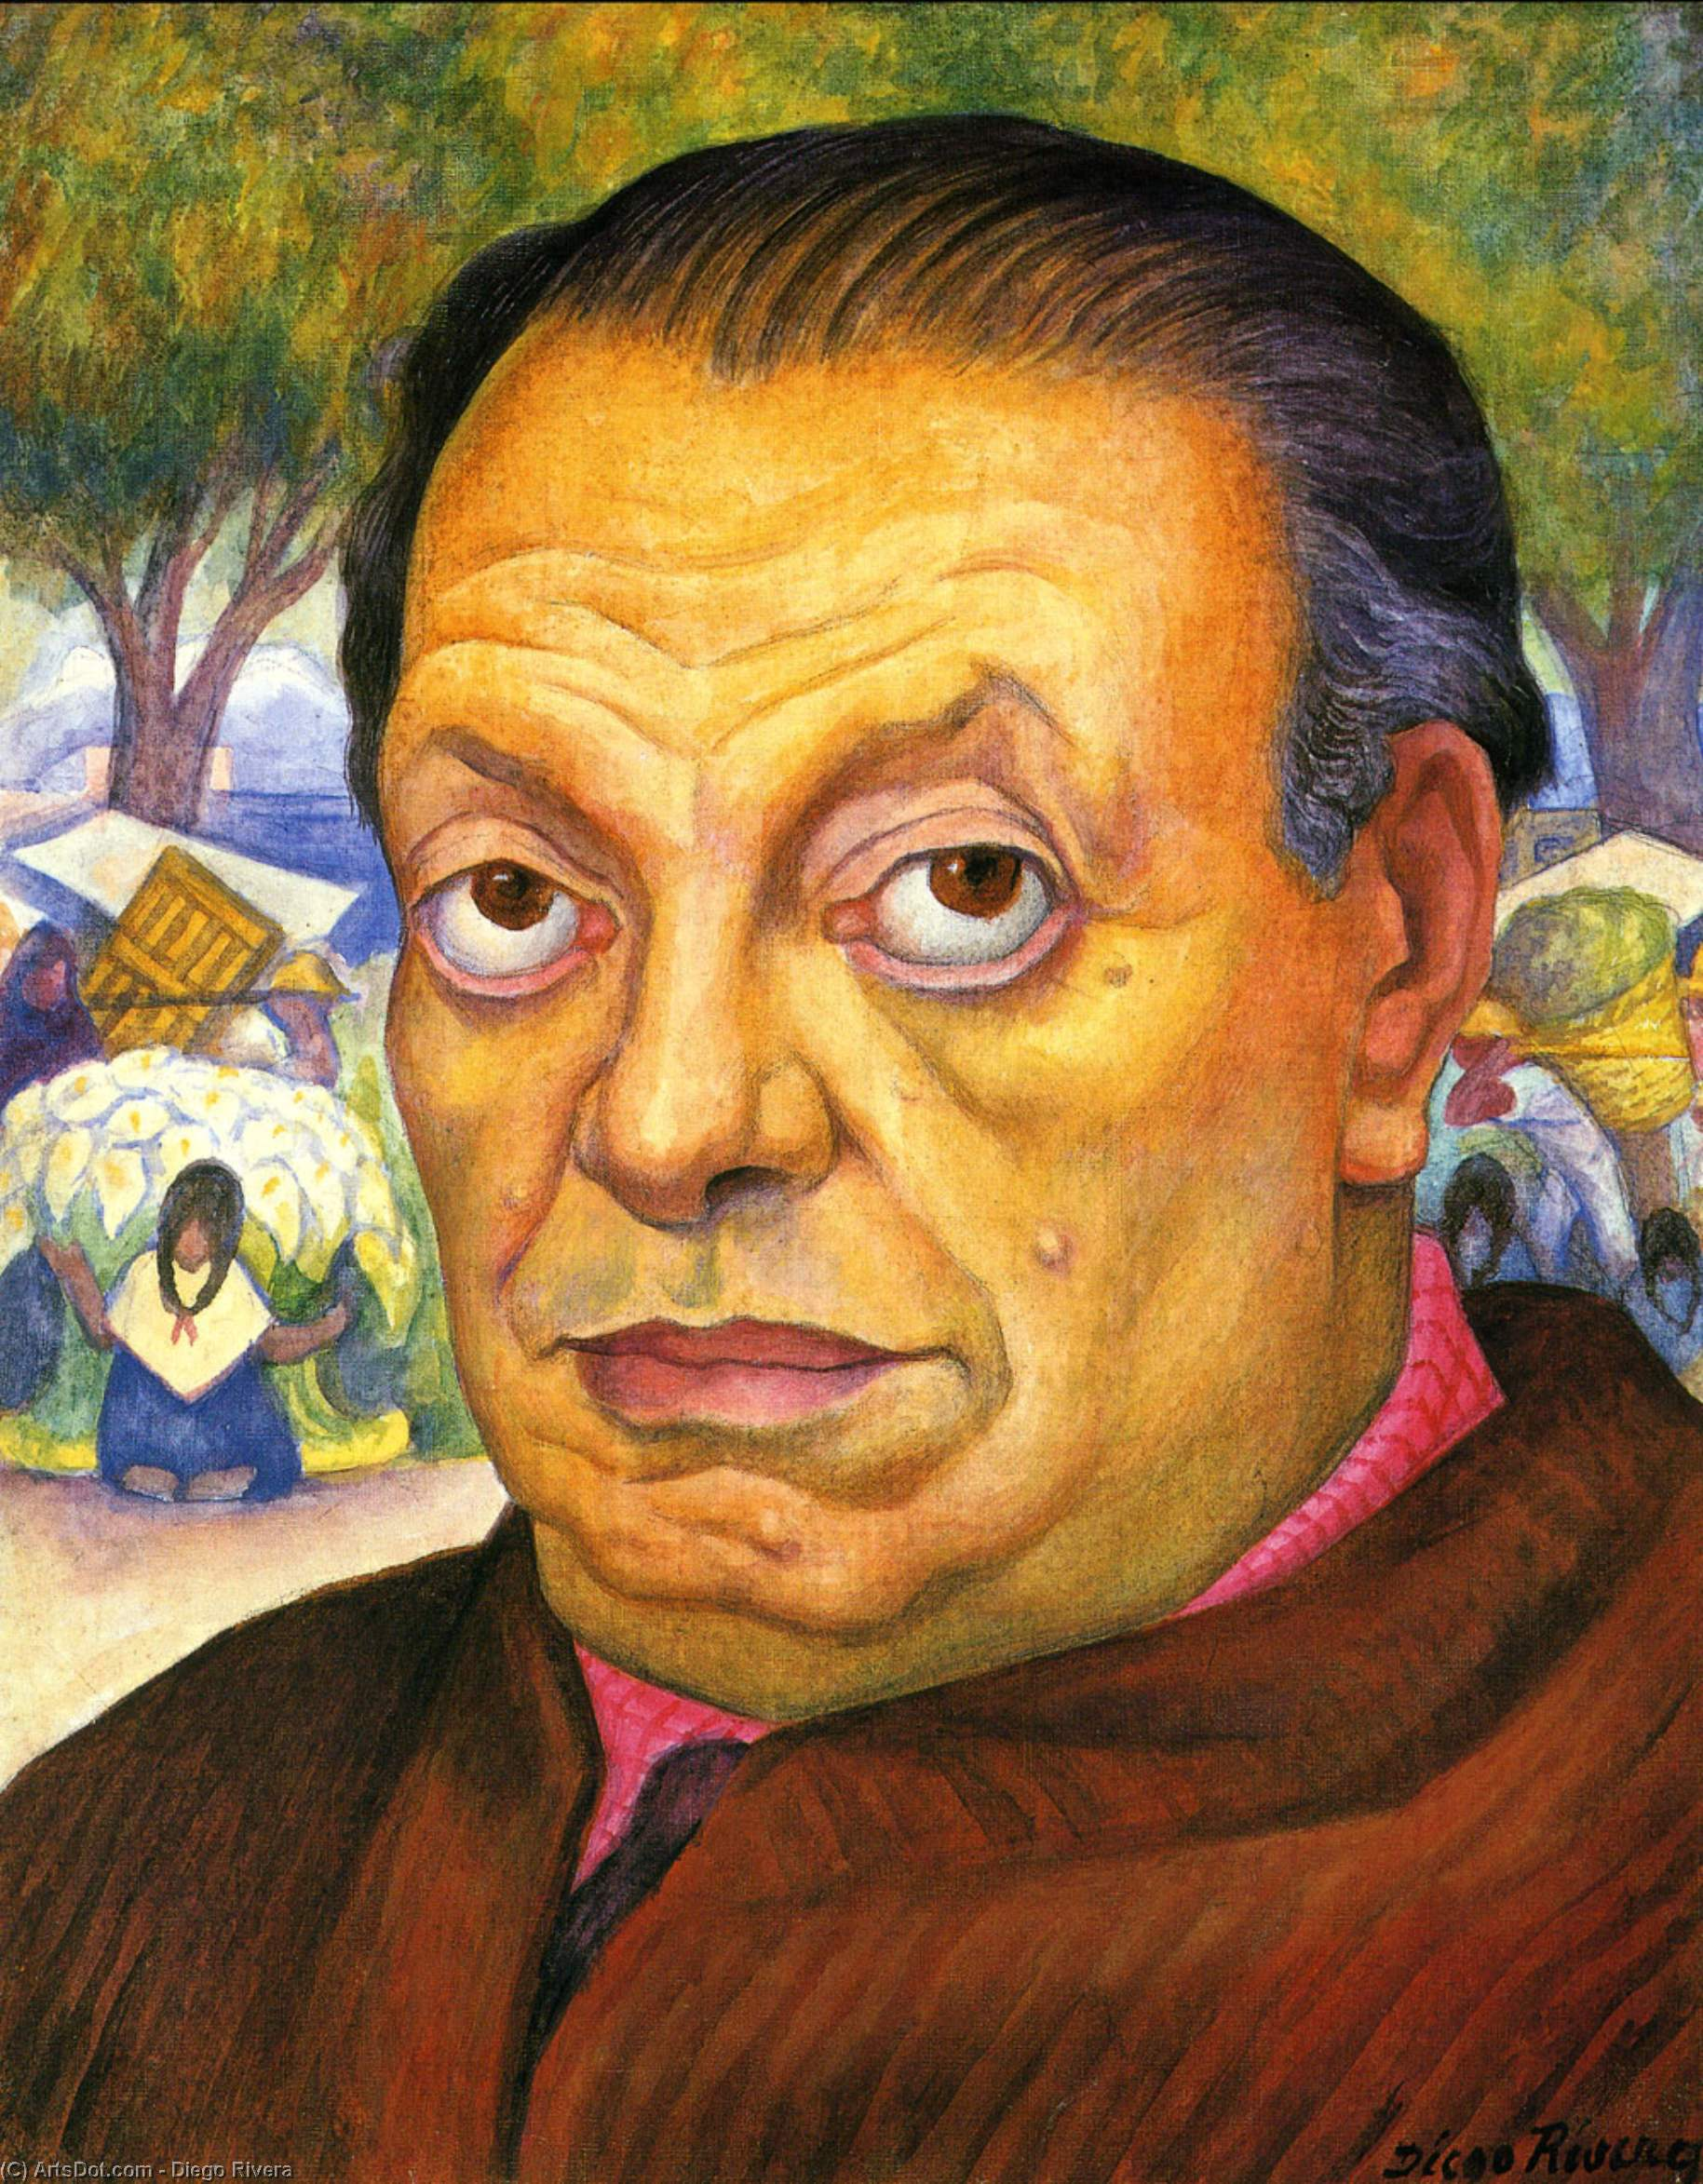 Self-Portrait 2, Oil by Diego Rivera (1886-1957, Mexico)